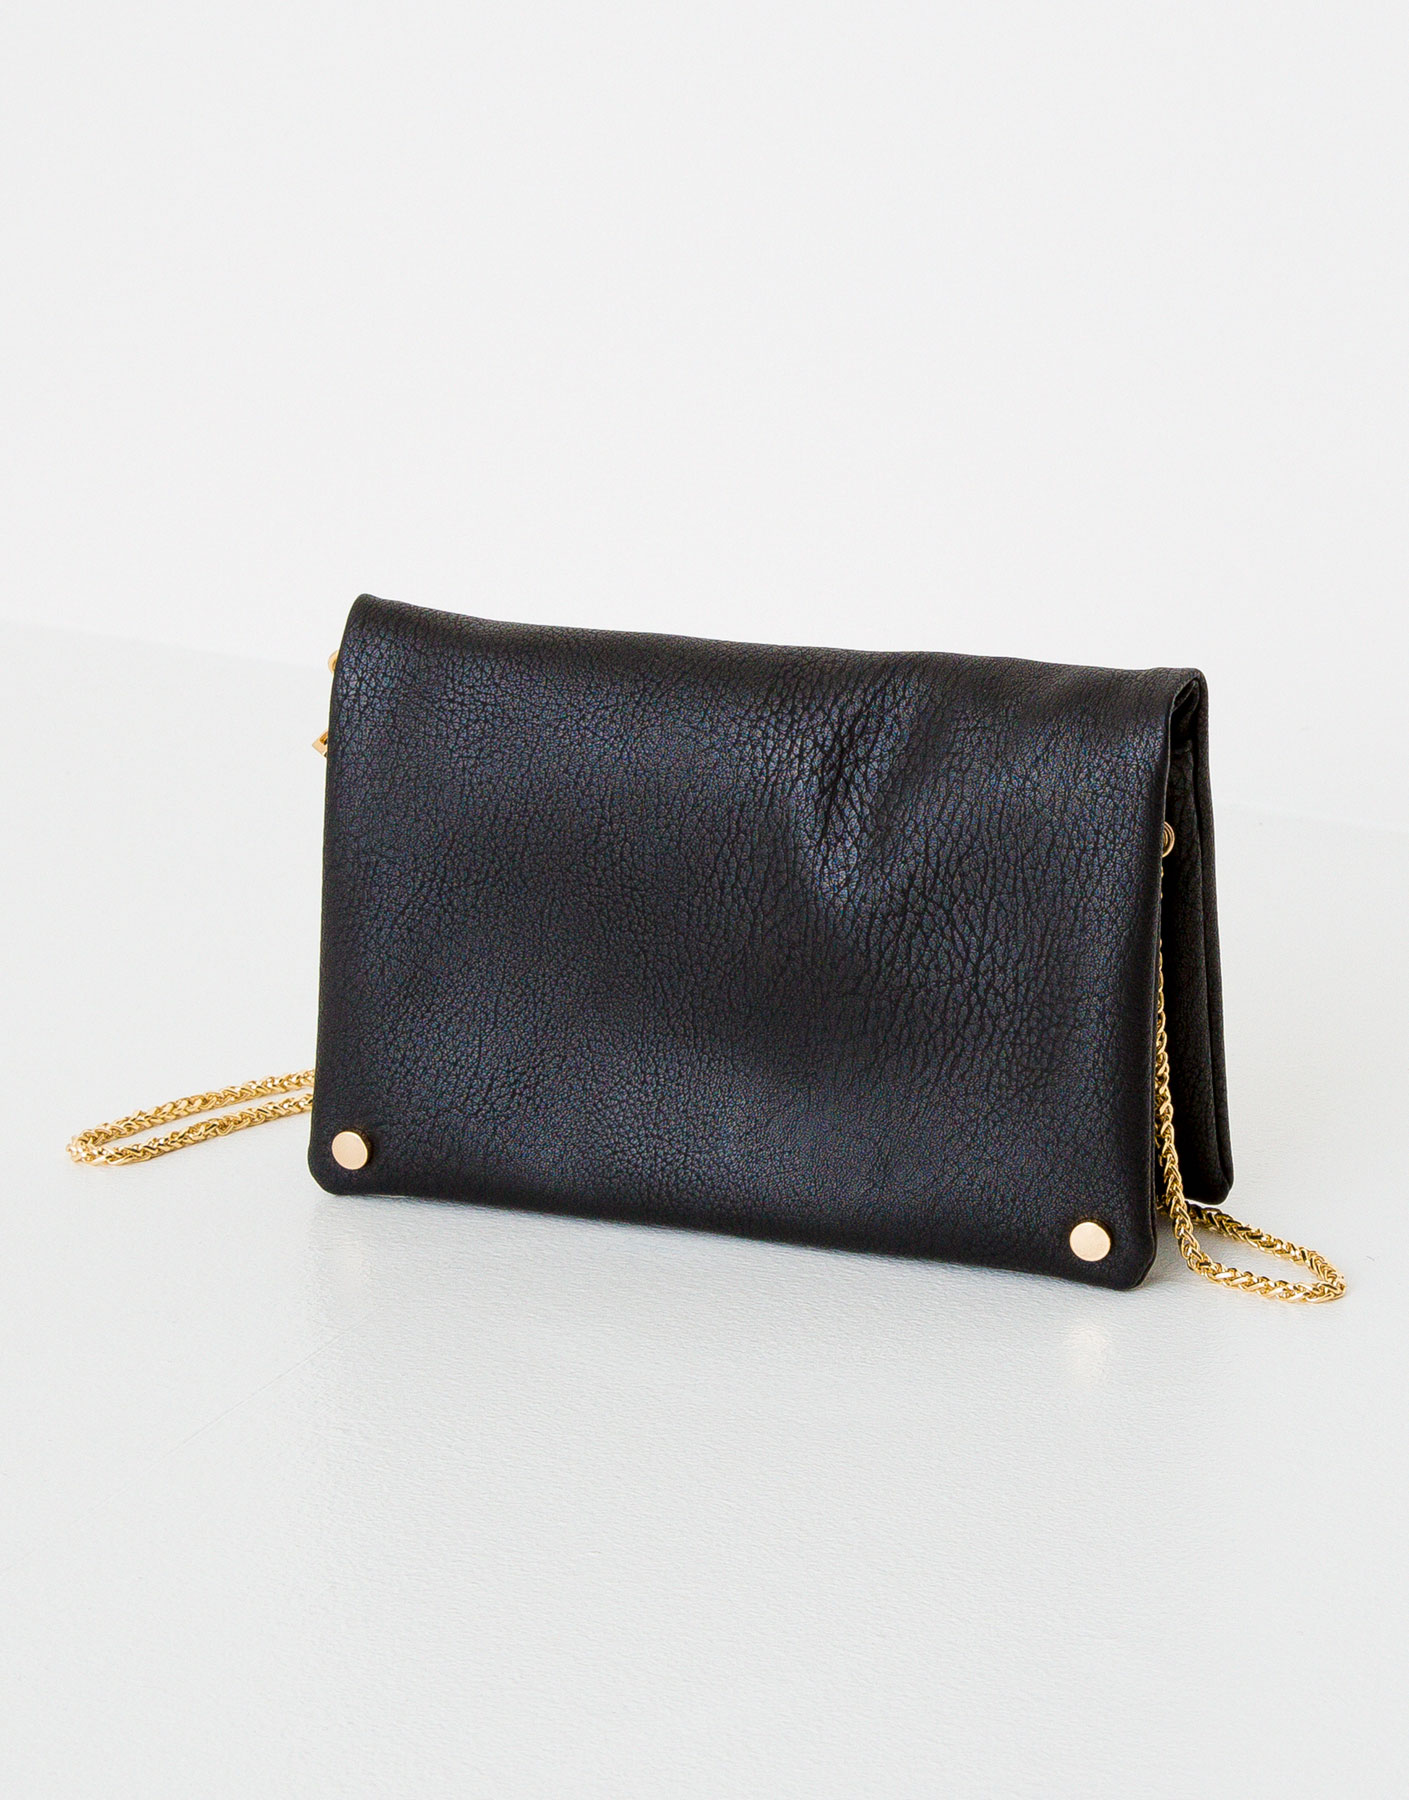 Studded minibag with a chain